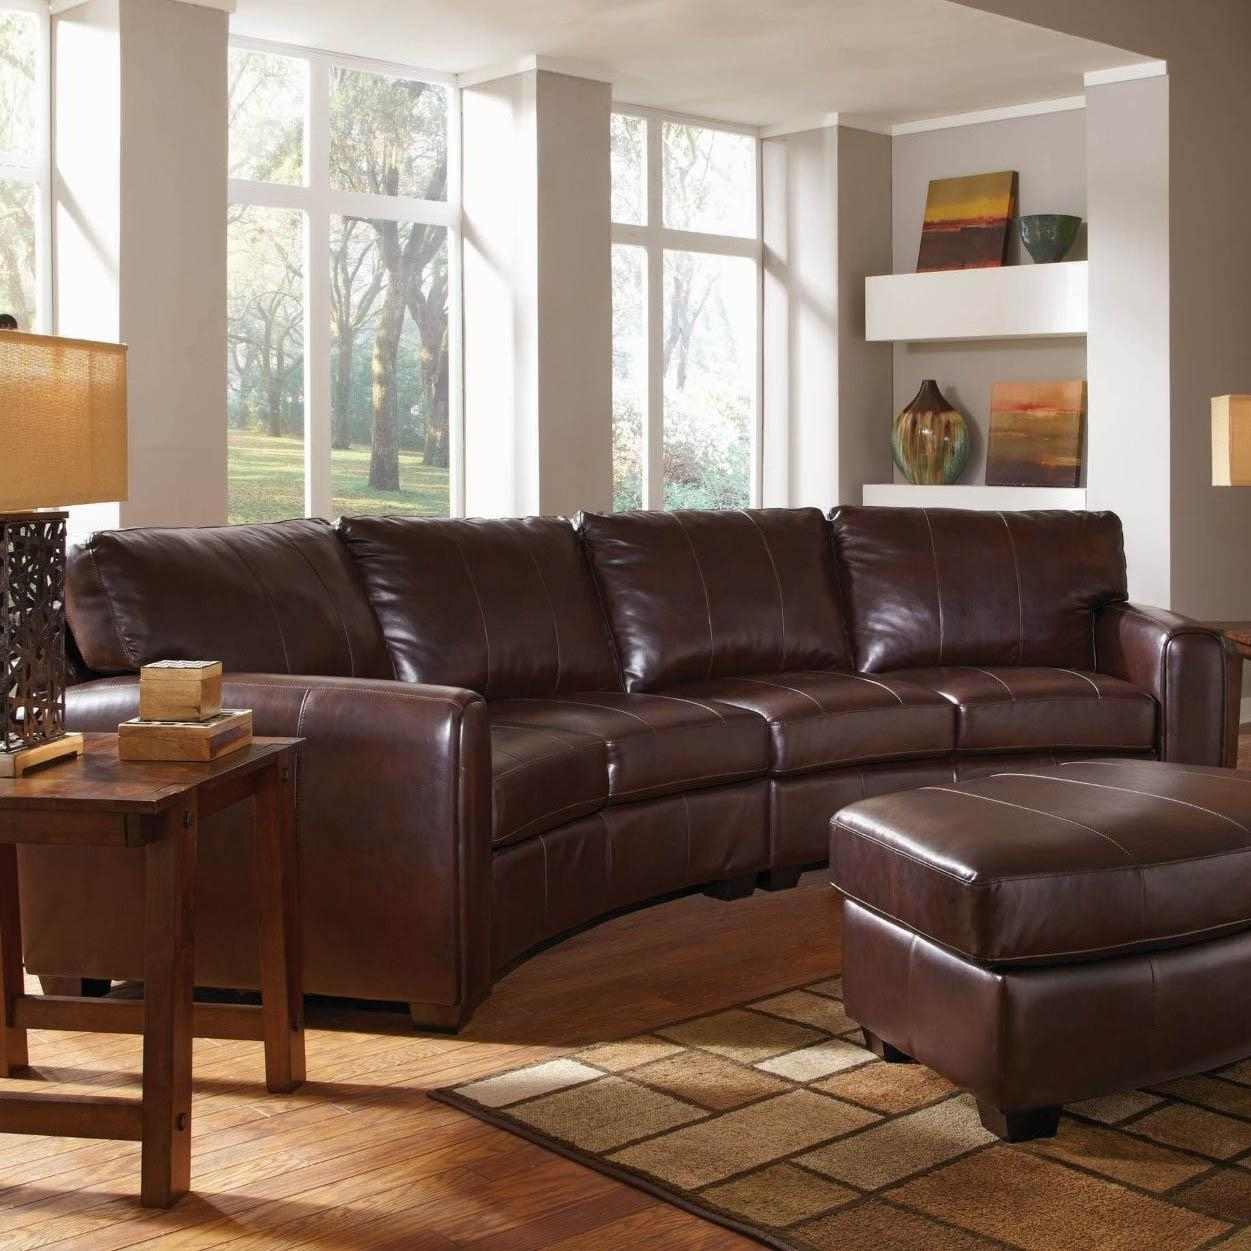 living room with leather sectional 2018 leather curved sectional sofa ideas 22354